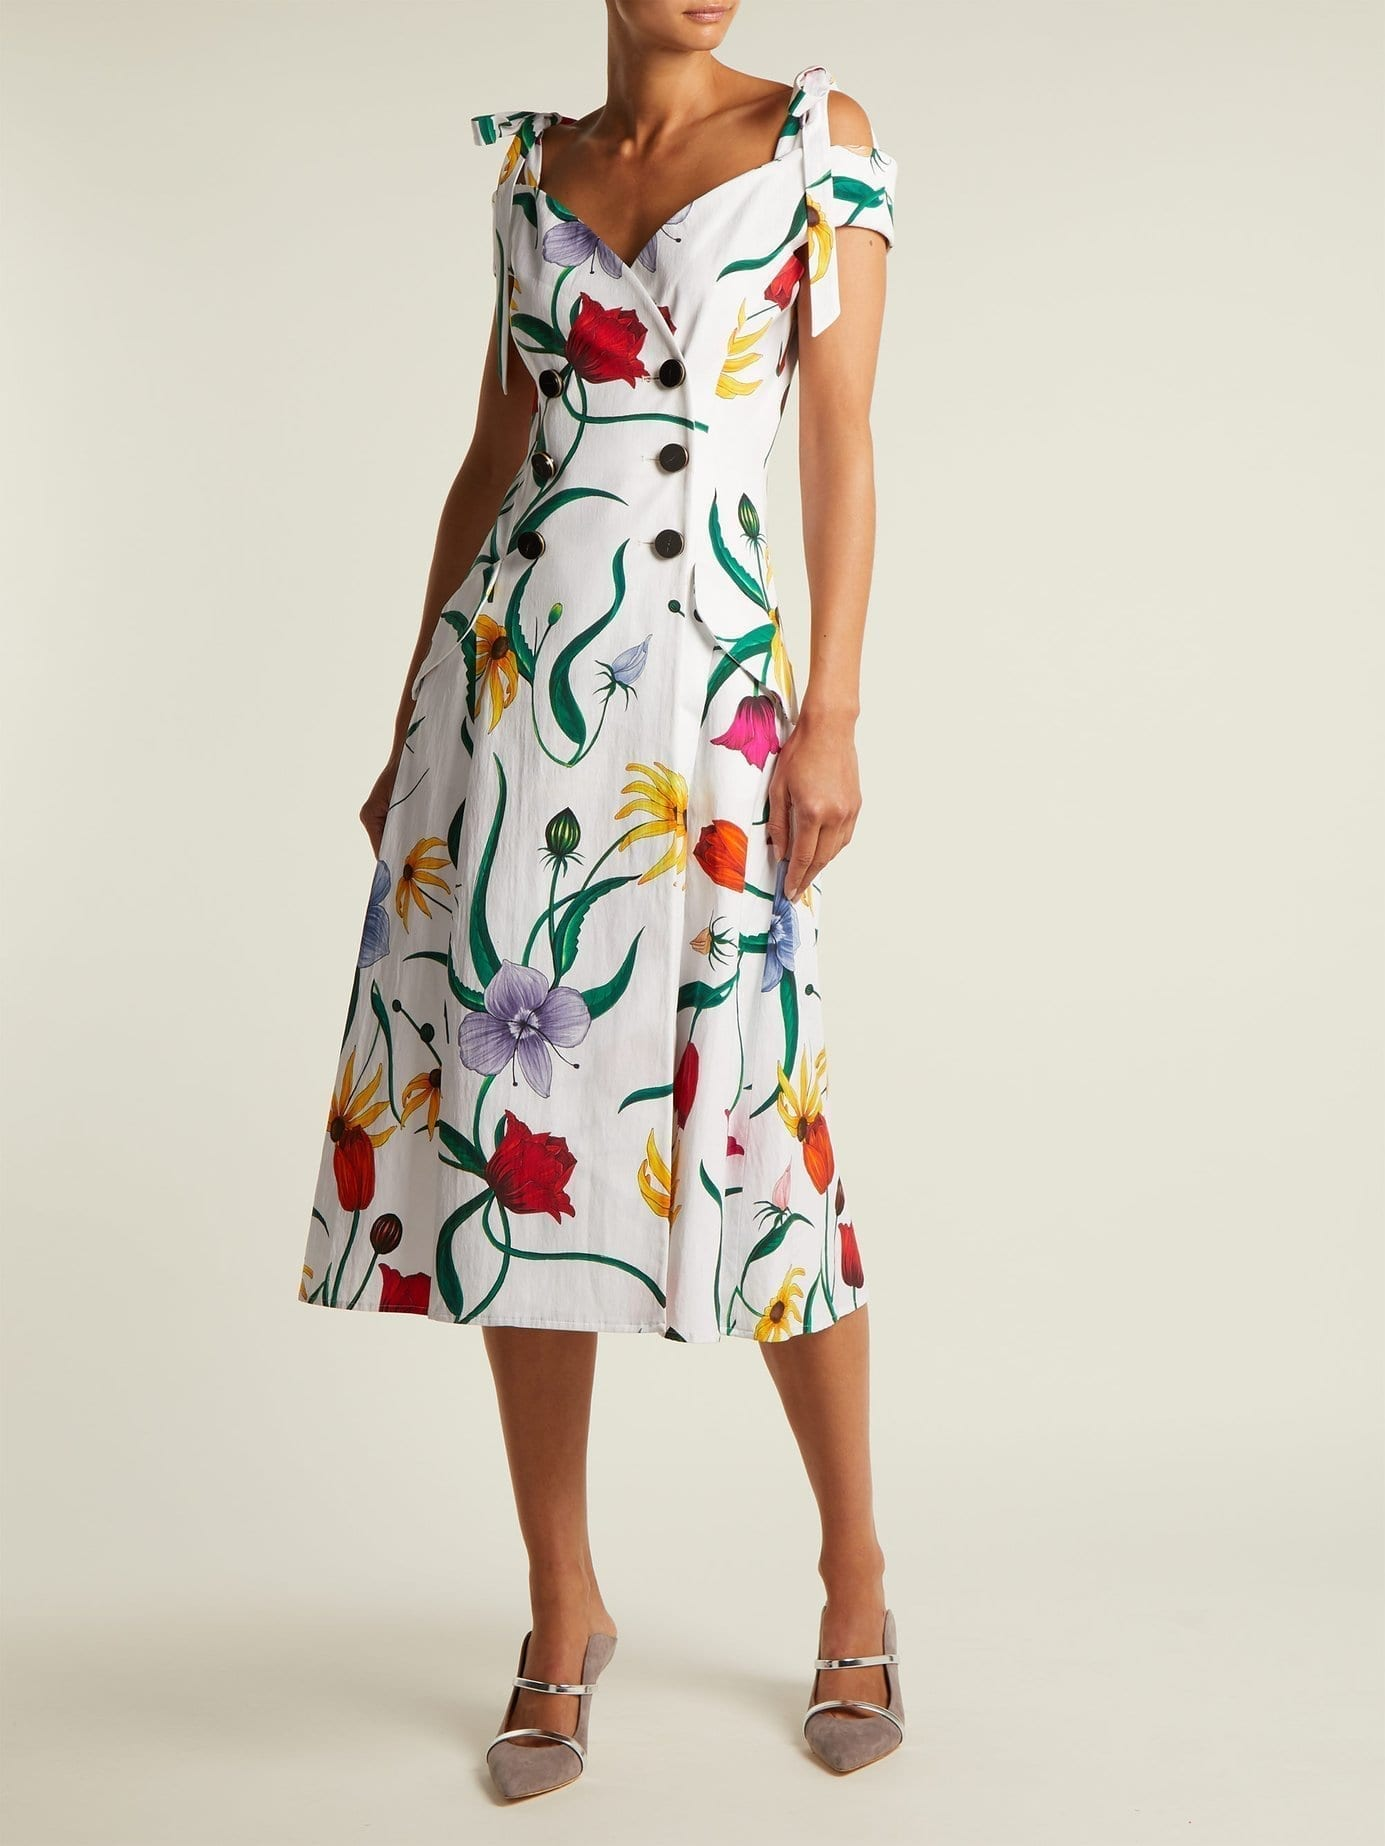 Carolina Herrera Cotton Blend Faille White Fl Printed Dress